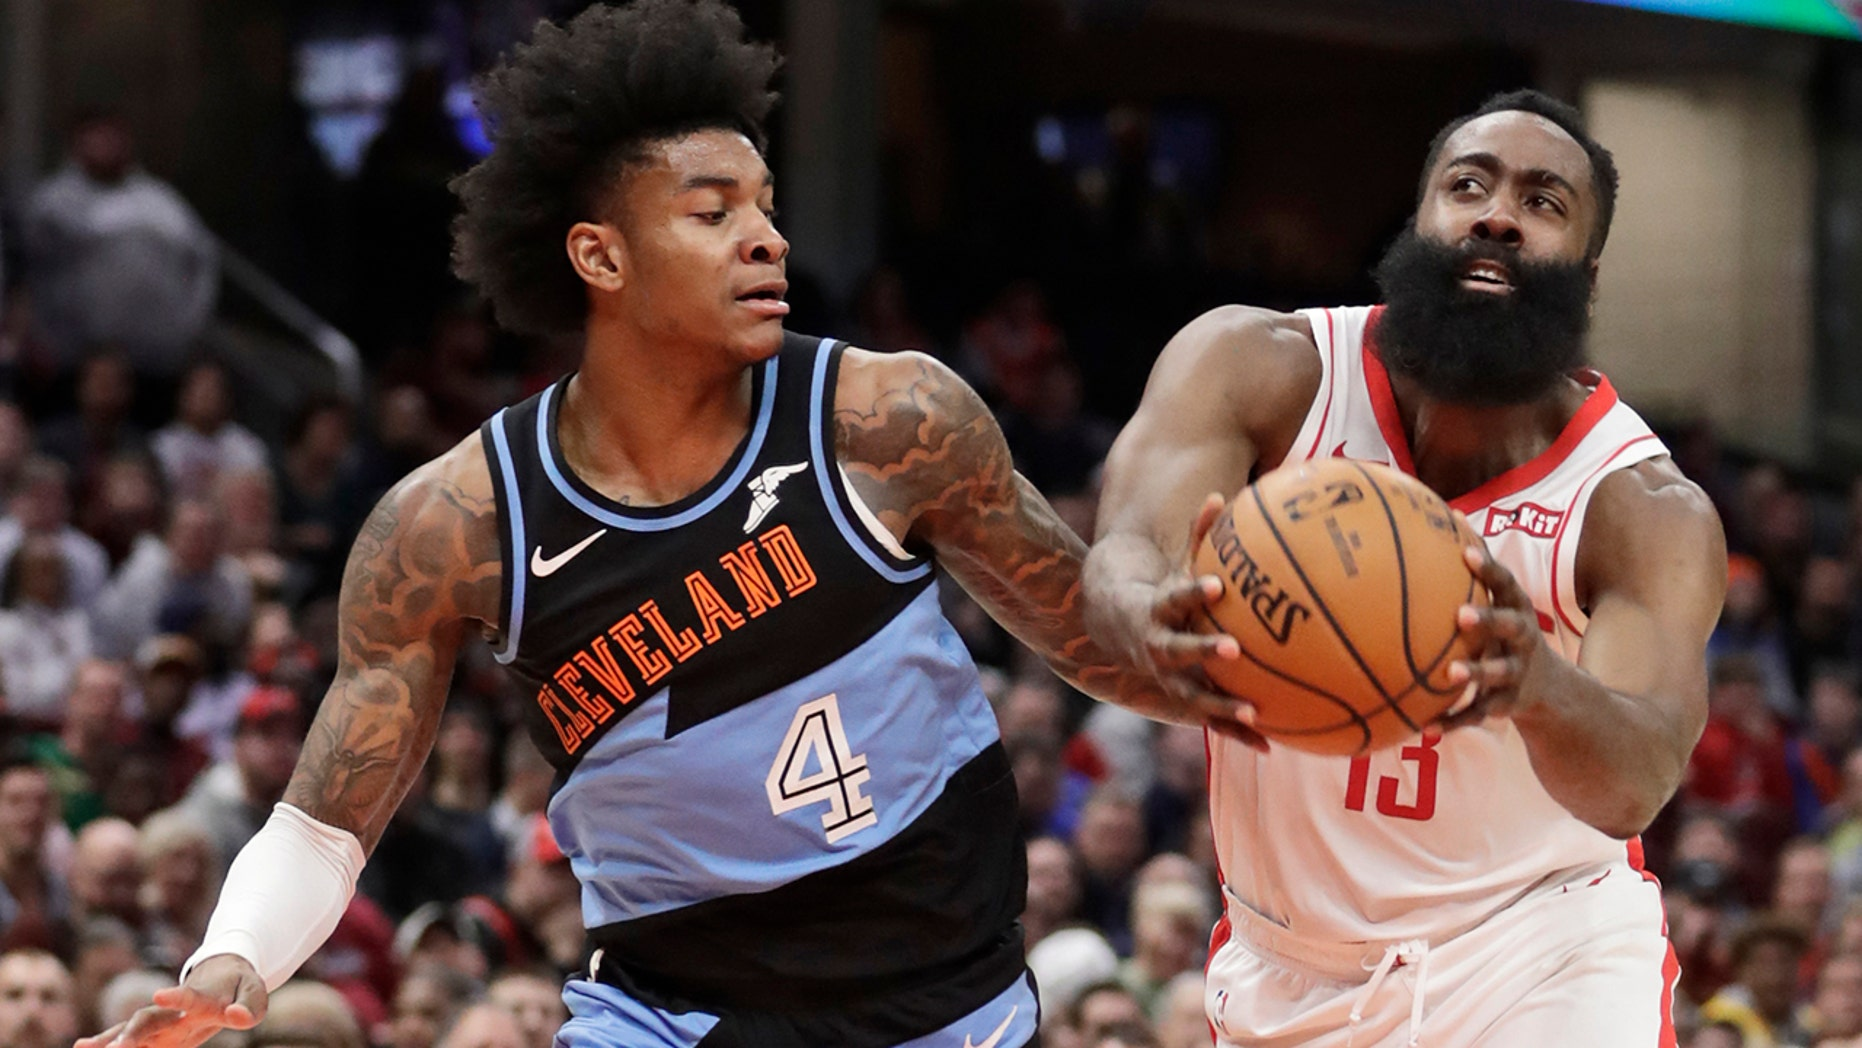 Houston Rockets' James Harden (13) drives past Cleveland Cavaliers' Kevin Porter Jr. (4) in the second half of an NBA basketball game, Wednesday, Dec. 11, 2019, in Cleveland. Houston won 116-110. (AP Photo/Tony Dejak)